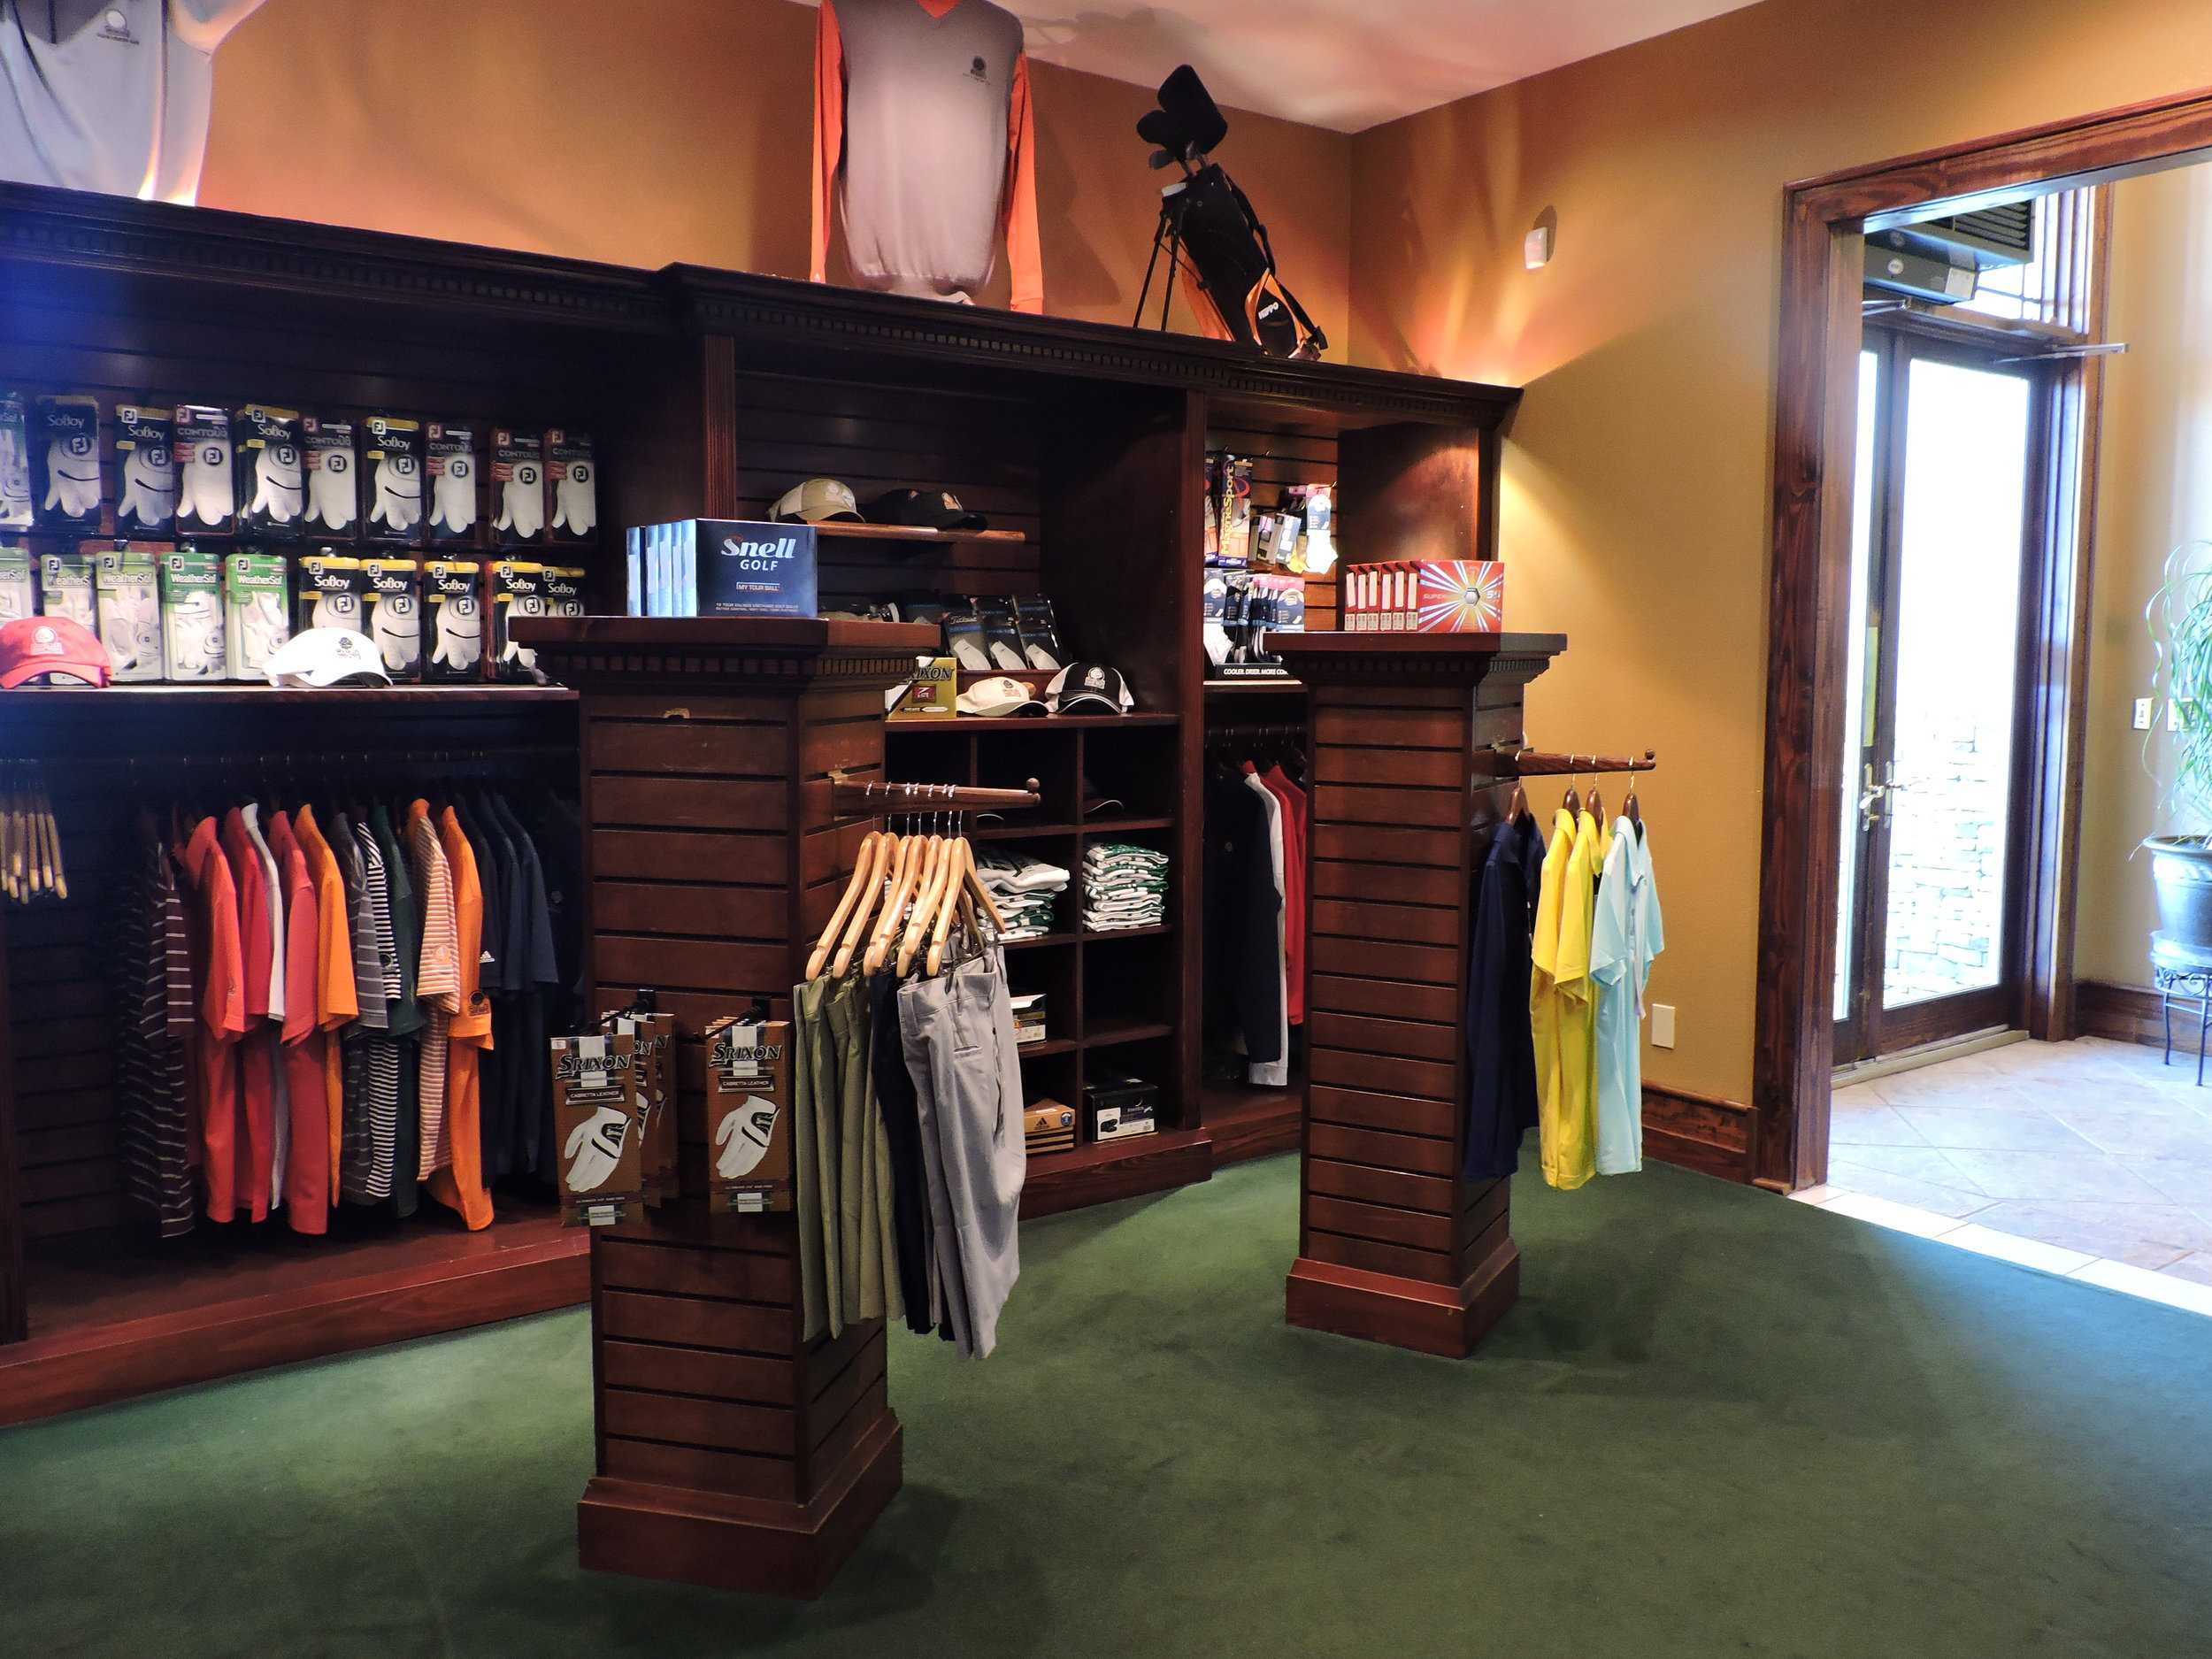 Tennessee_Golf_Woodlake_Pro_Shop.JPG